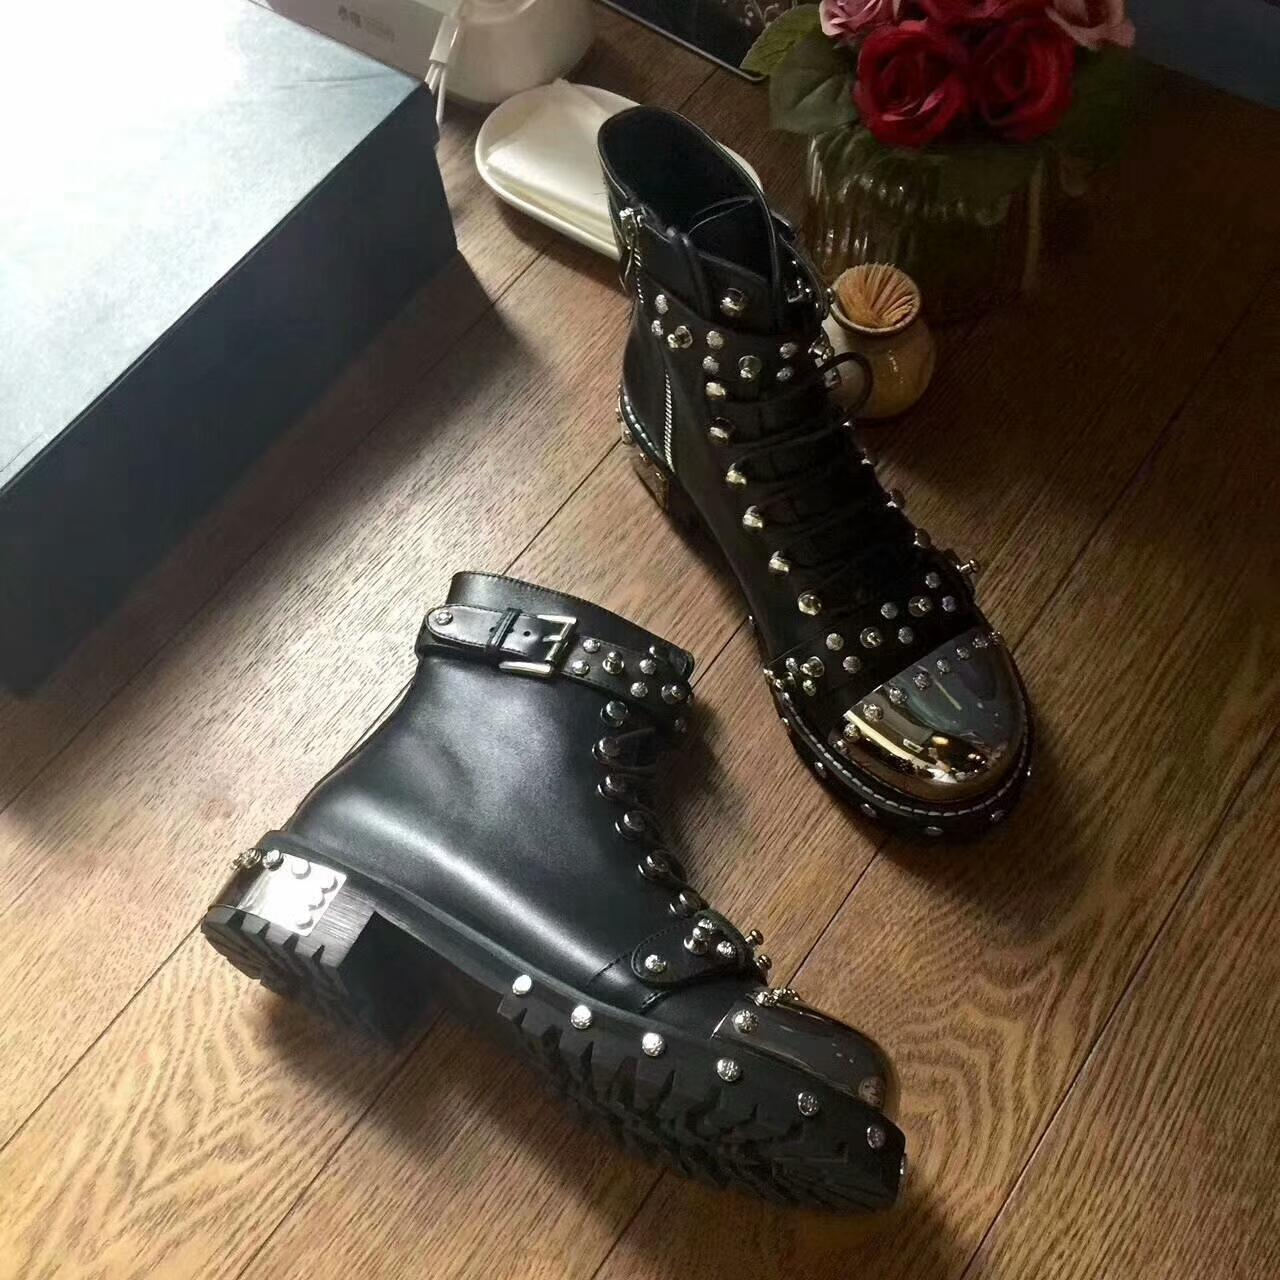 915de1624a908 2019Autumn/winter cow leather rivets motorcycle boots Woman's Chic martin  boots high quality real leather short boots EU35-41 size option